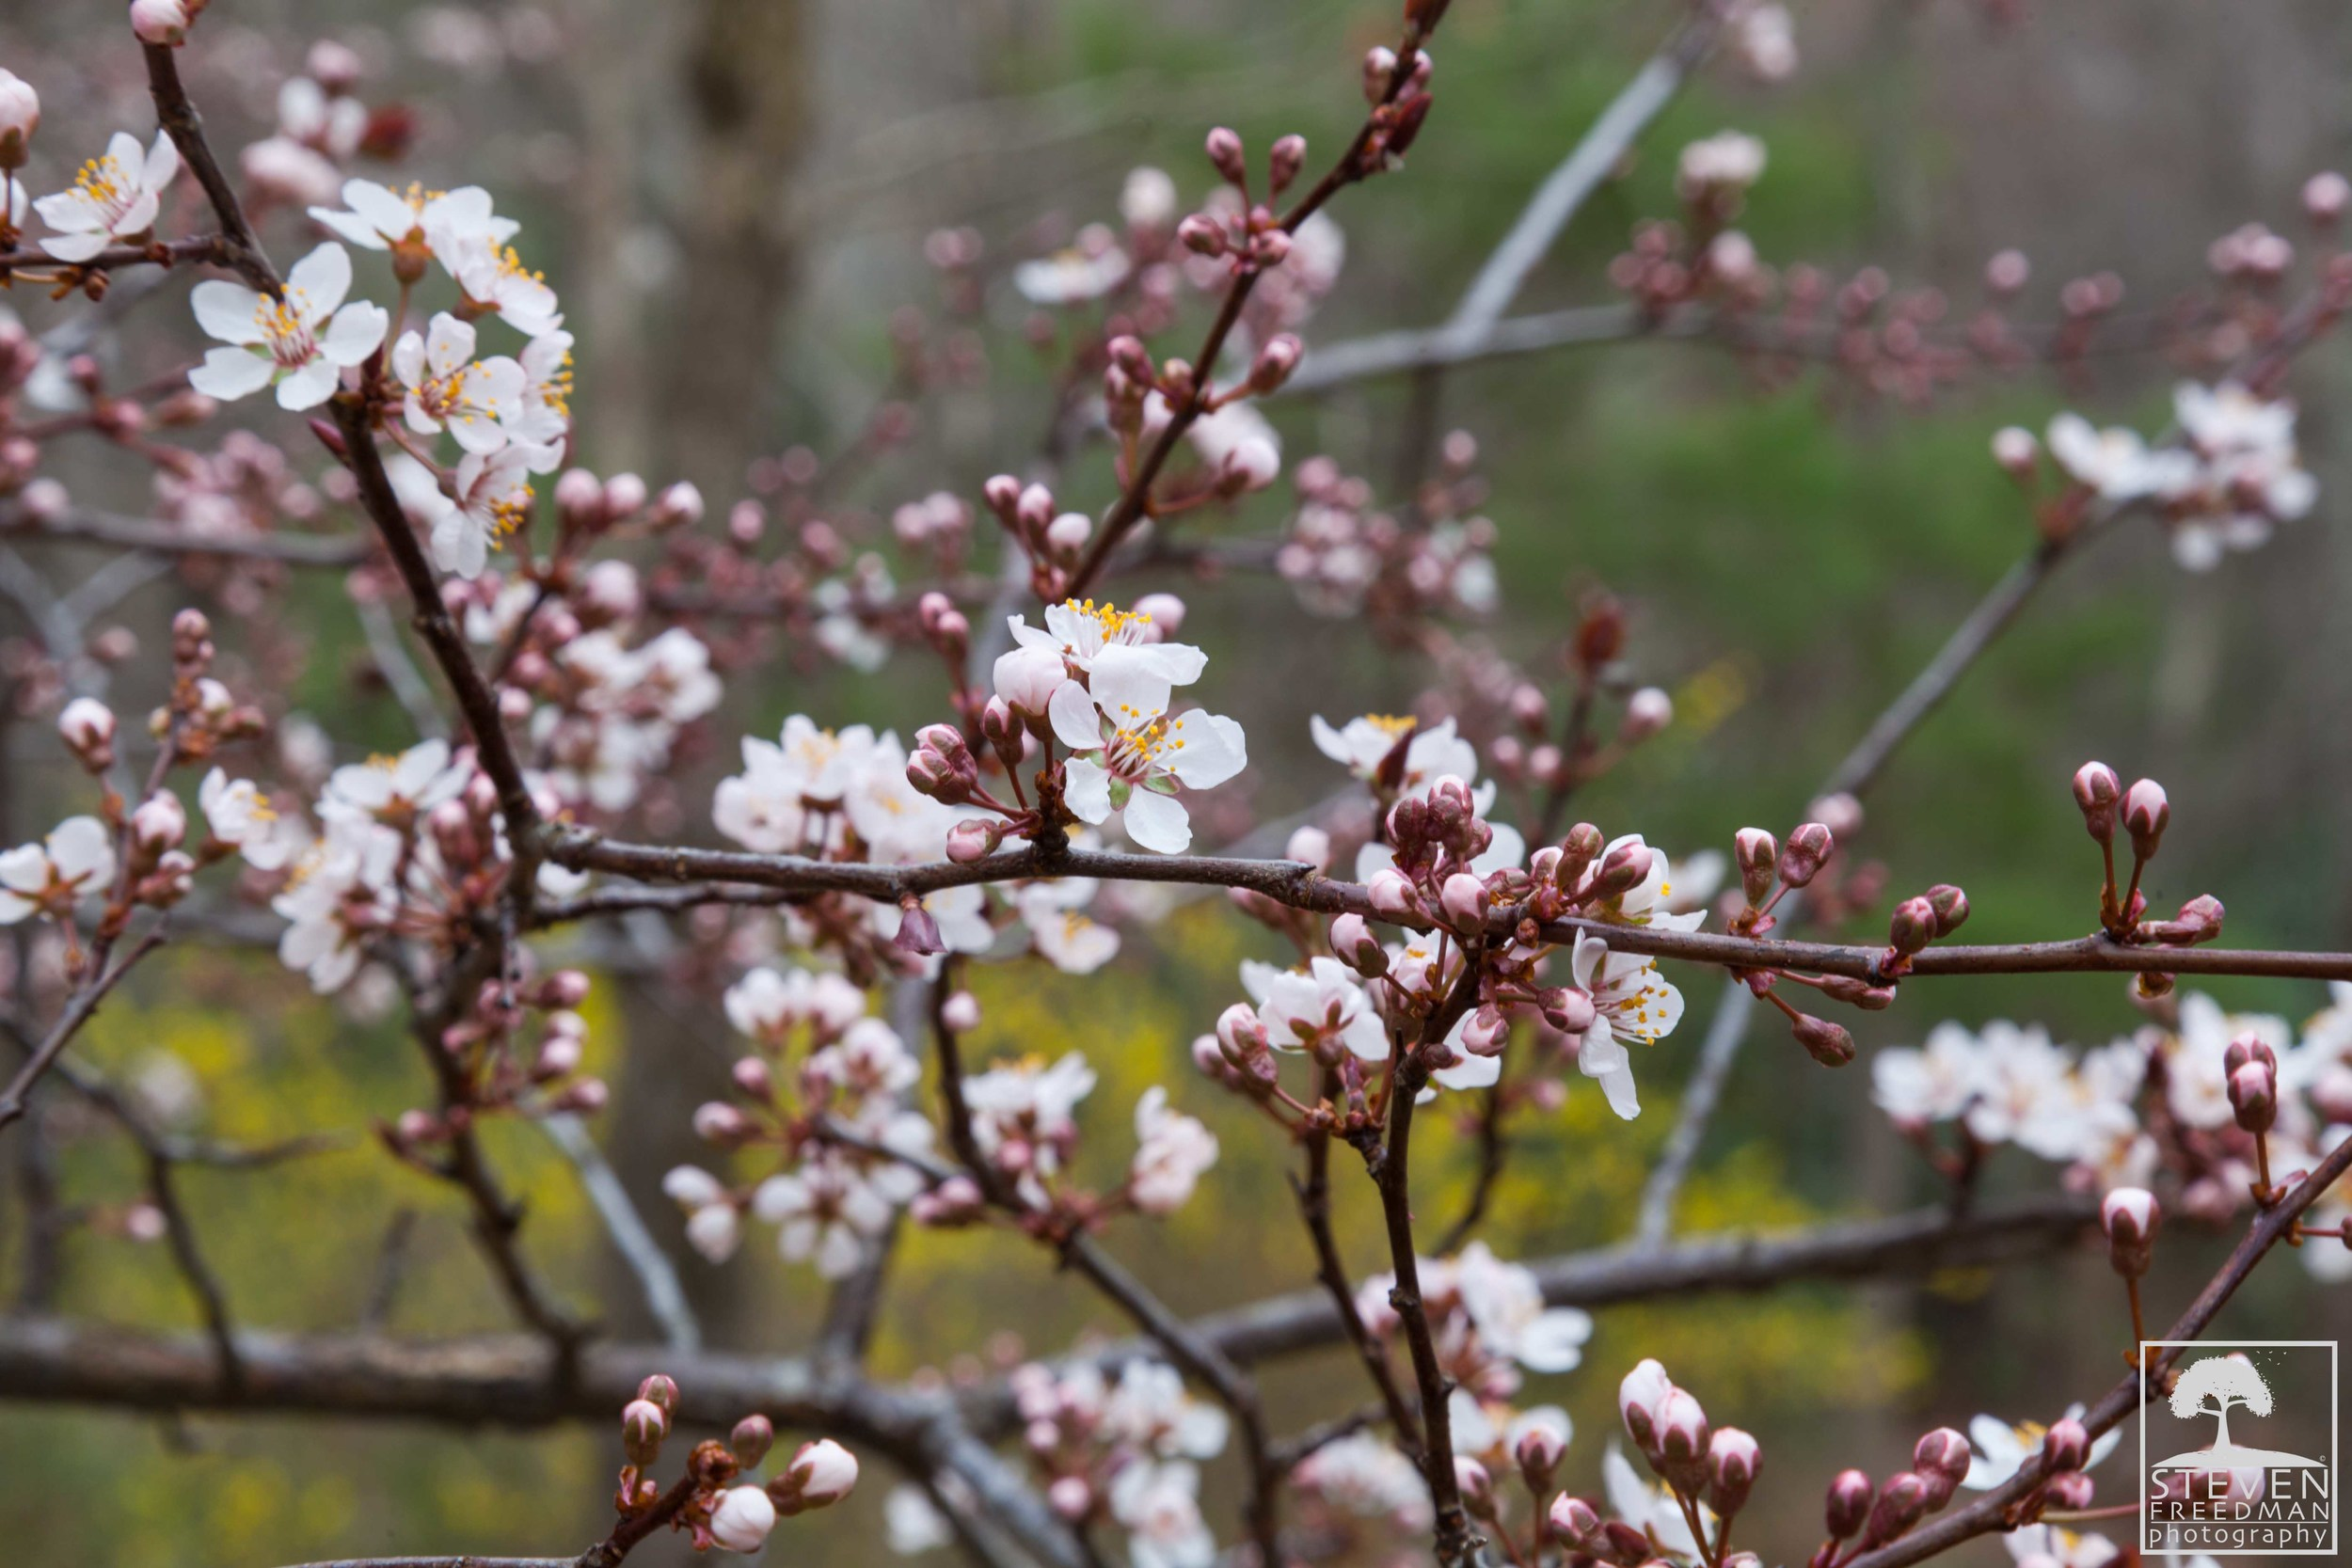 Cherry Tree... another flower with an incredible aroma